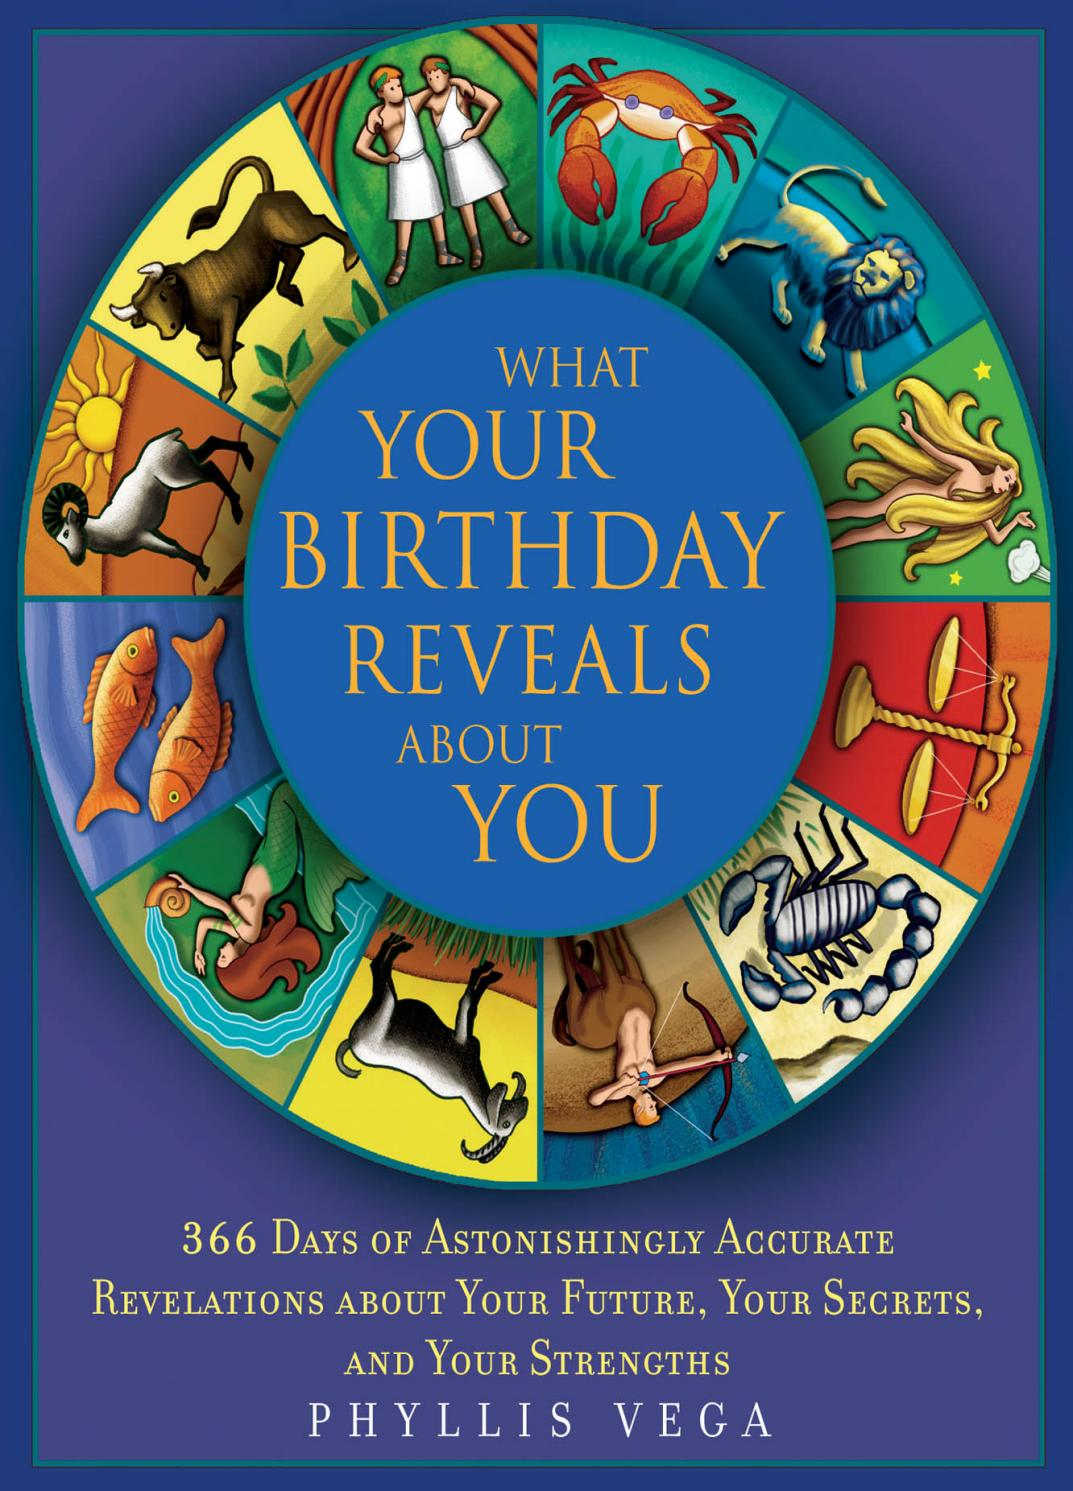 What your birthday reveals about you by Stav kesler - issuu